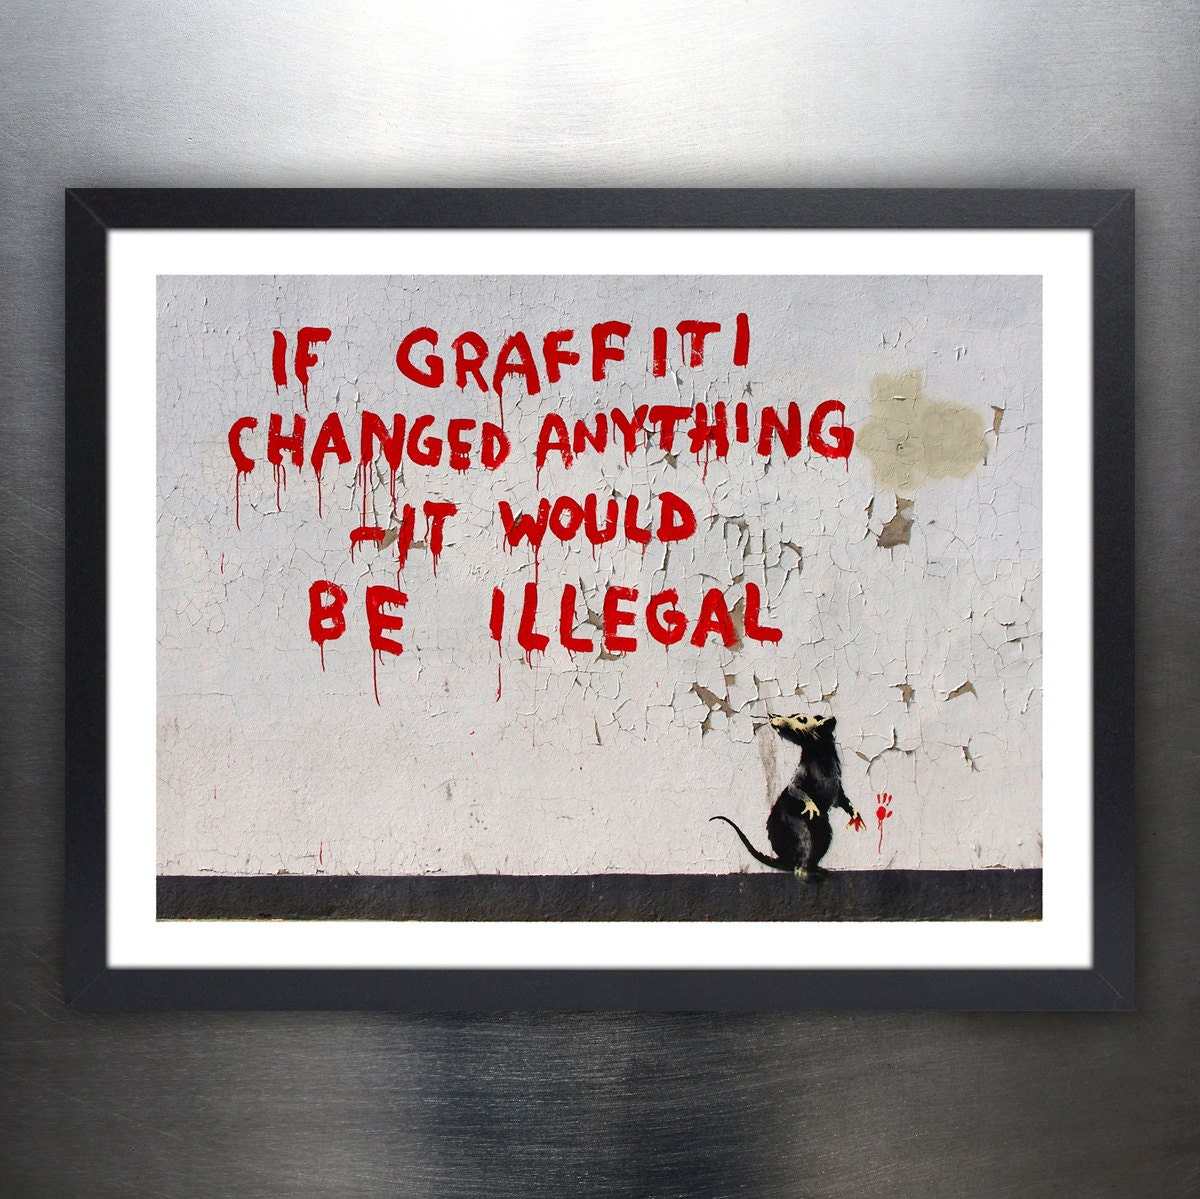 banksy if graffiti changed anything it would be illegal poster 18x24